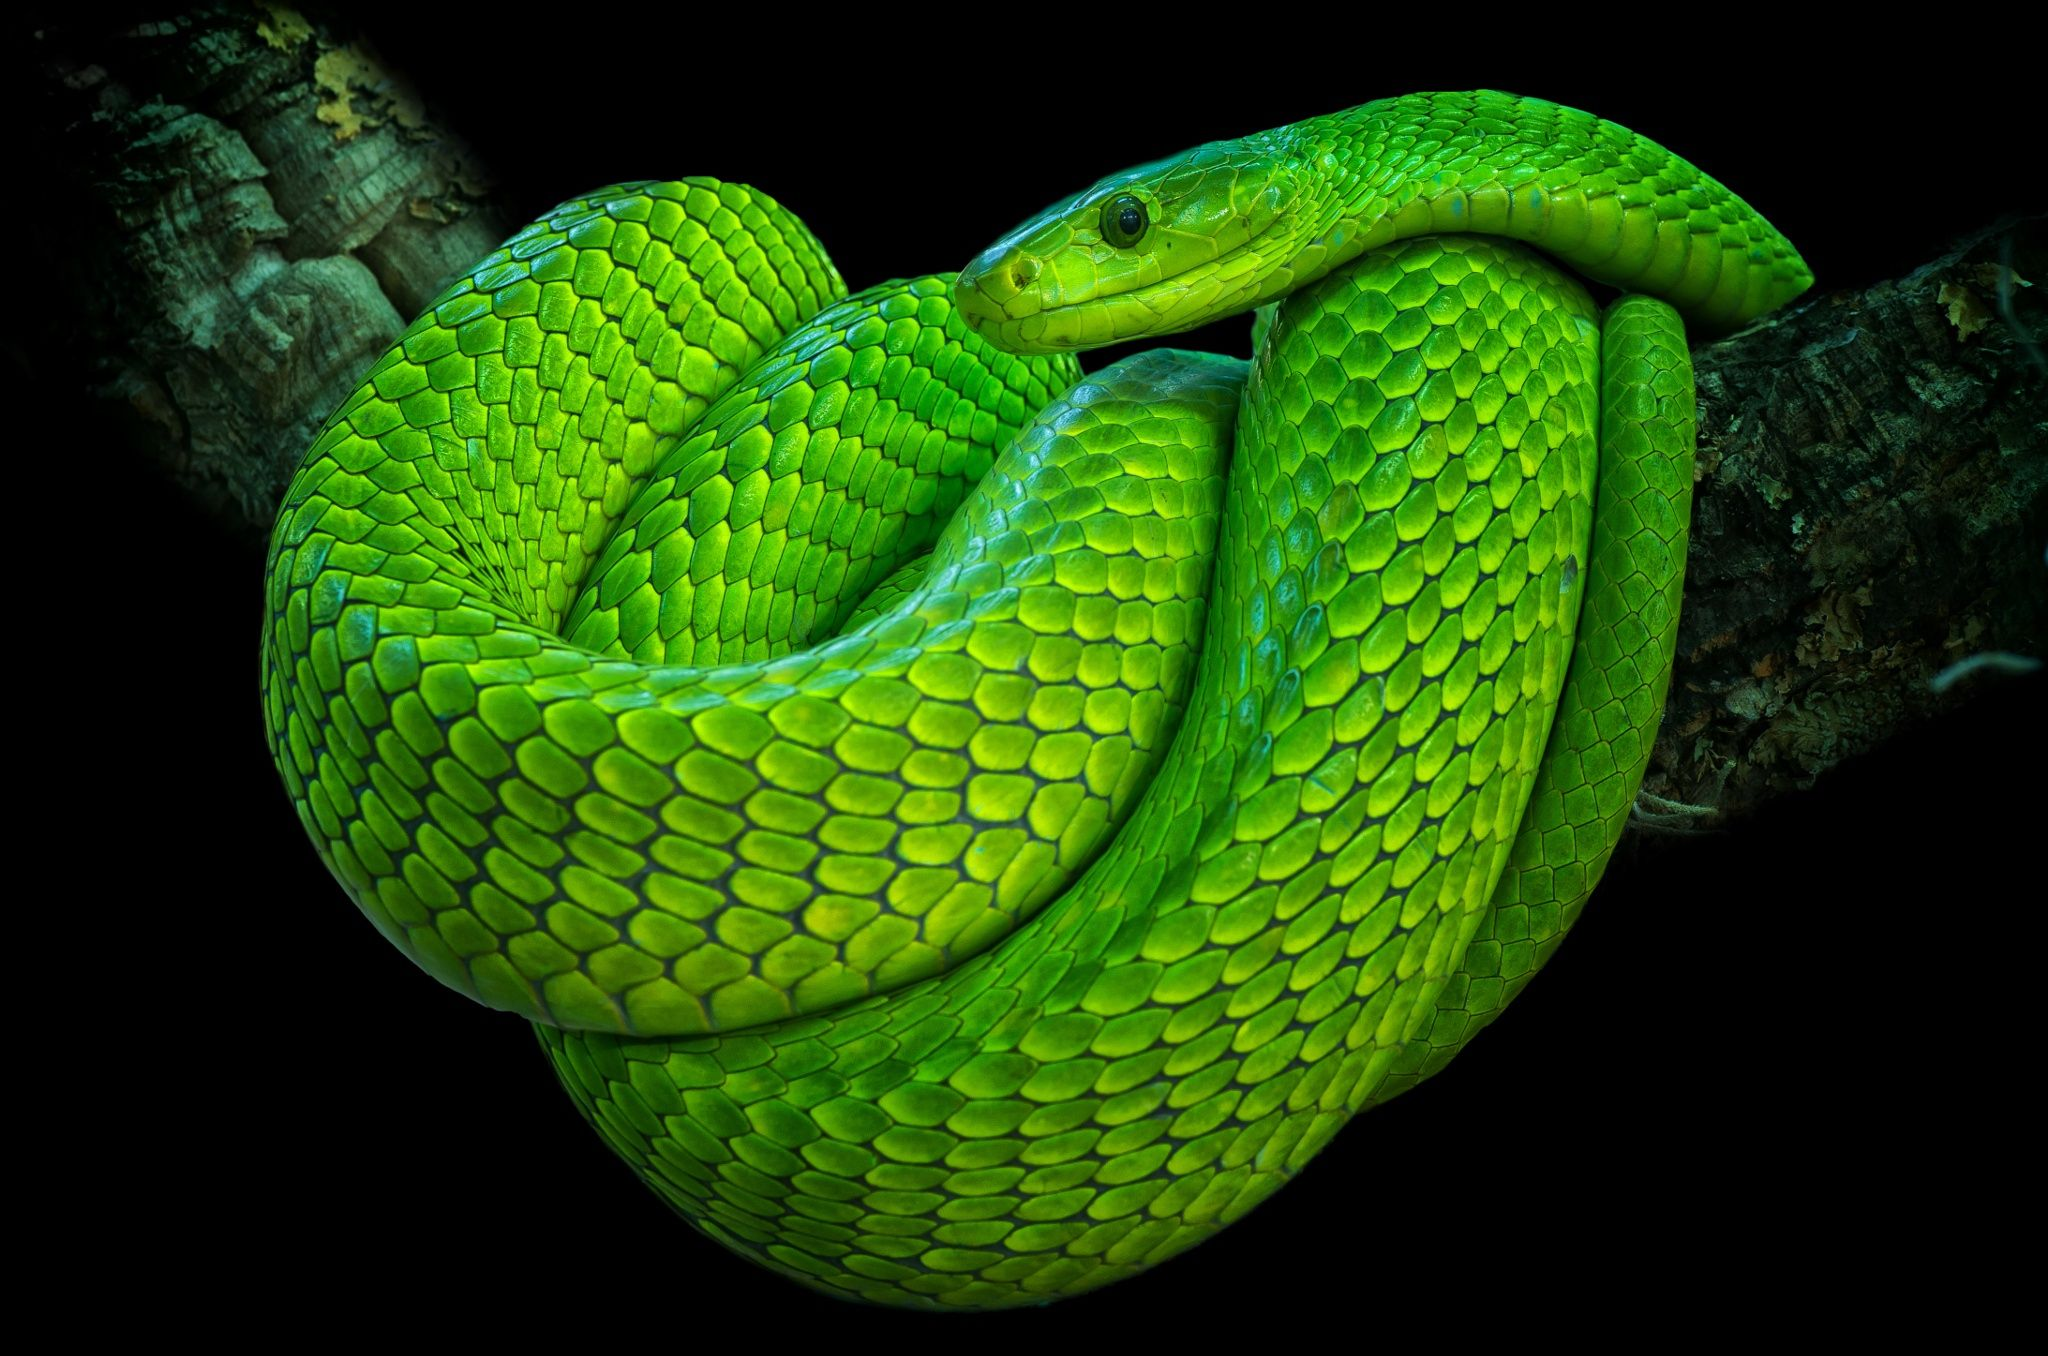 green mamba - Google Search | Photos | Pinterest